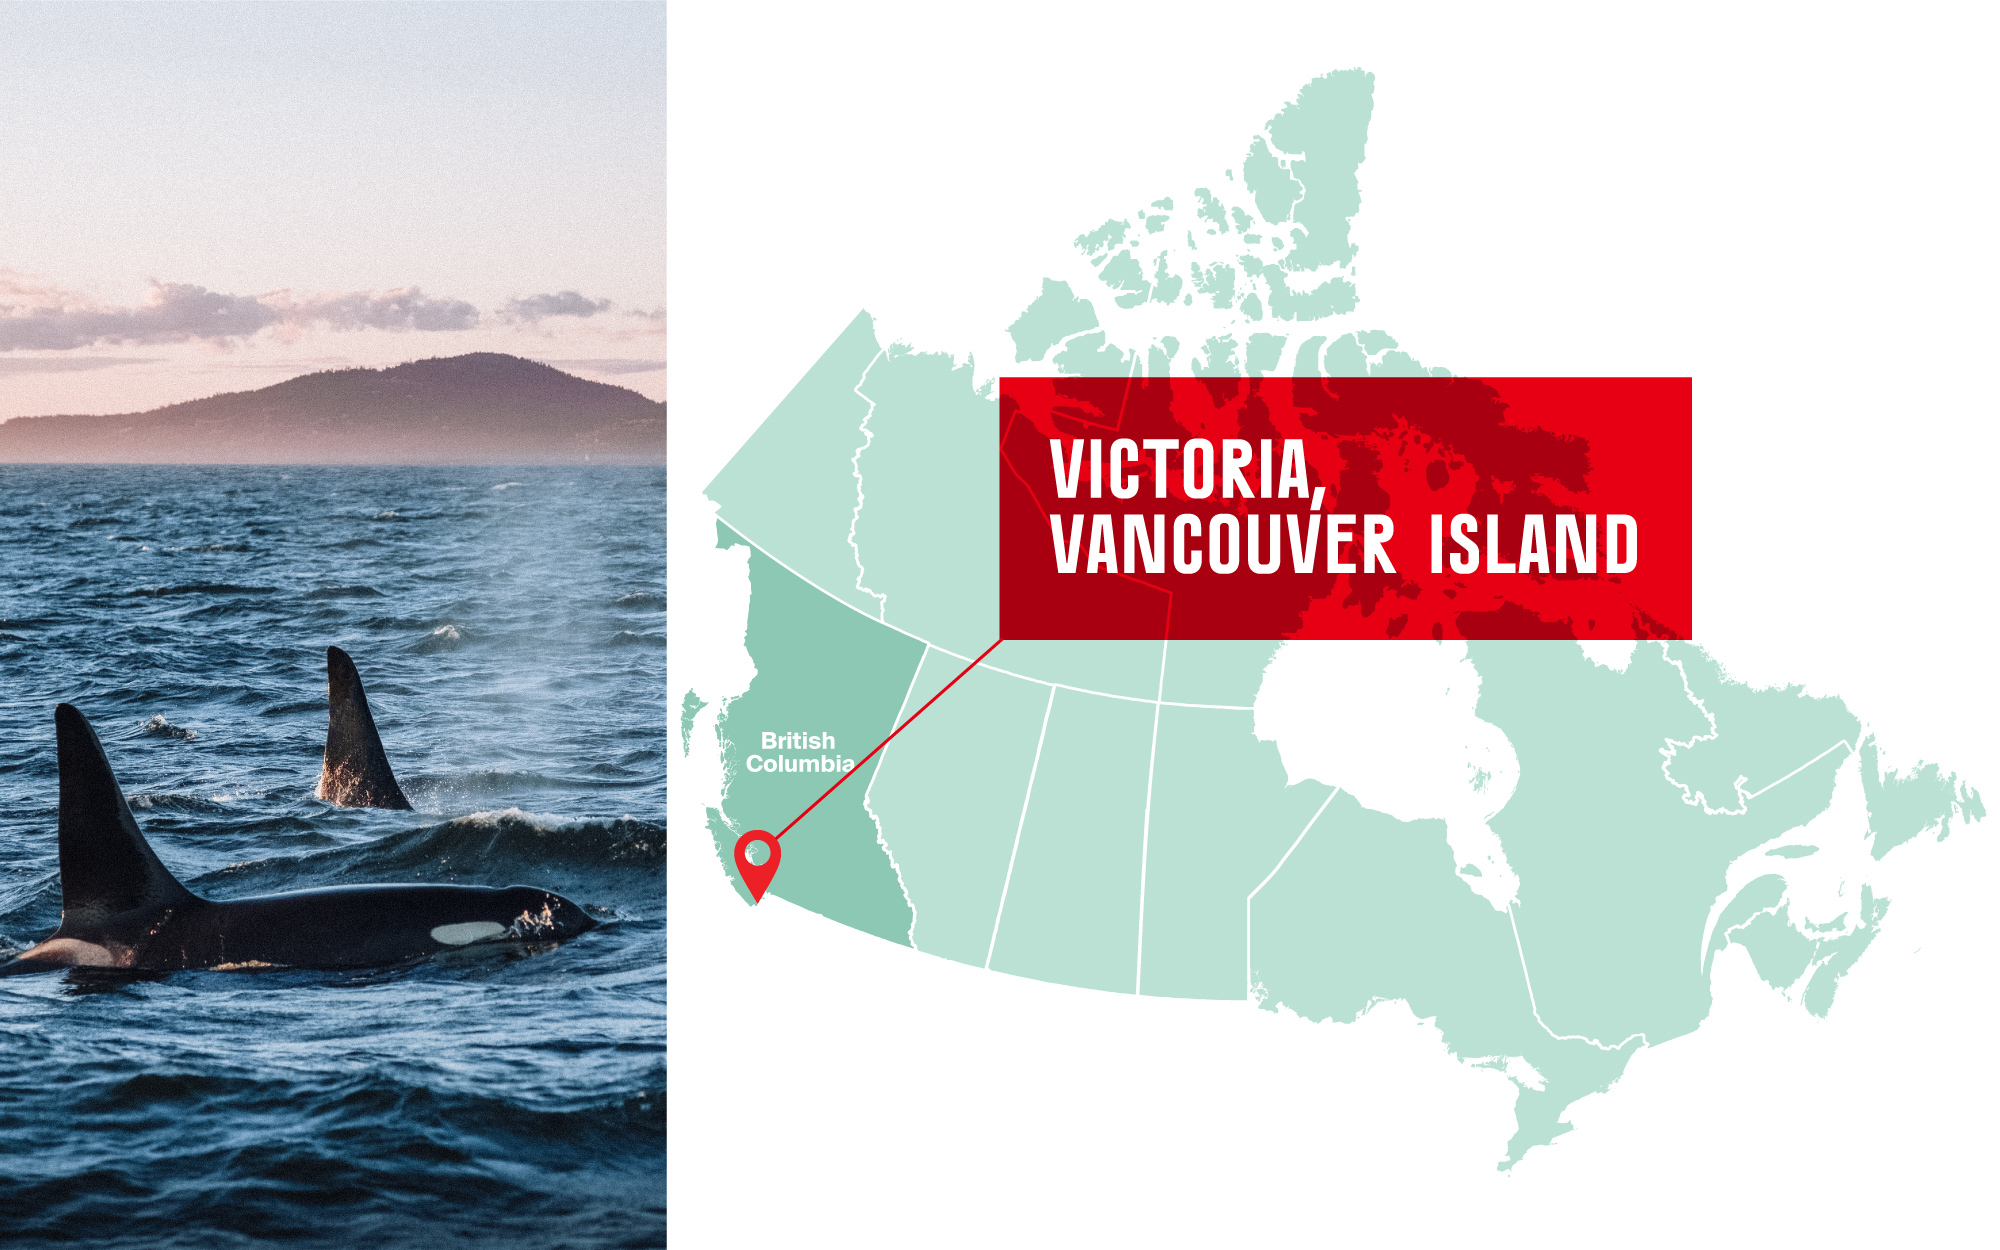 Orcas in the water in Victoria, British Columbia